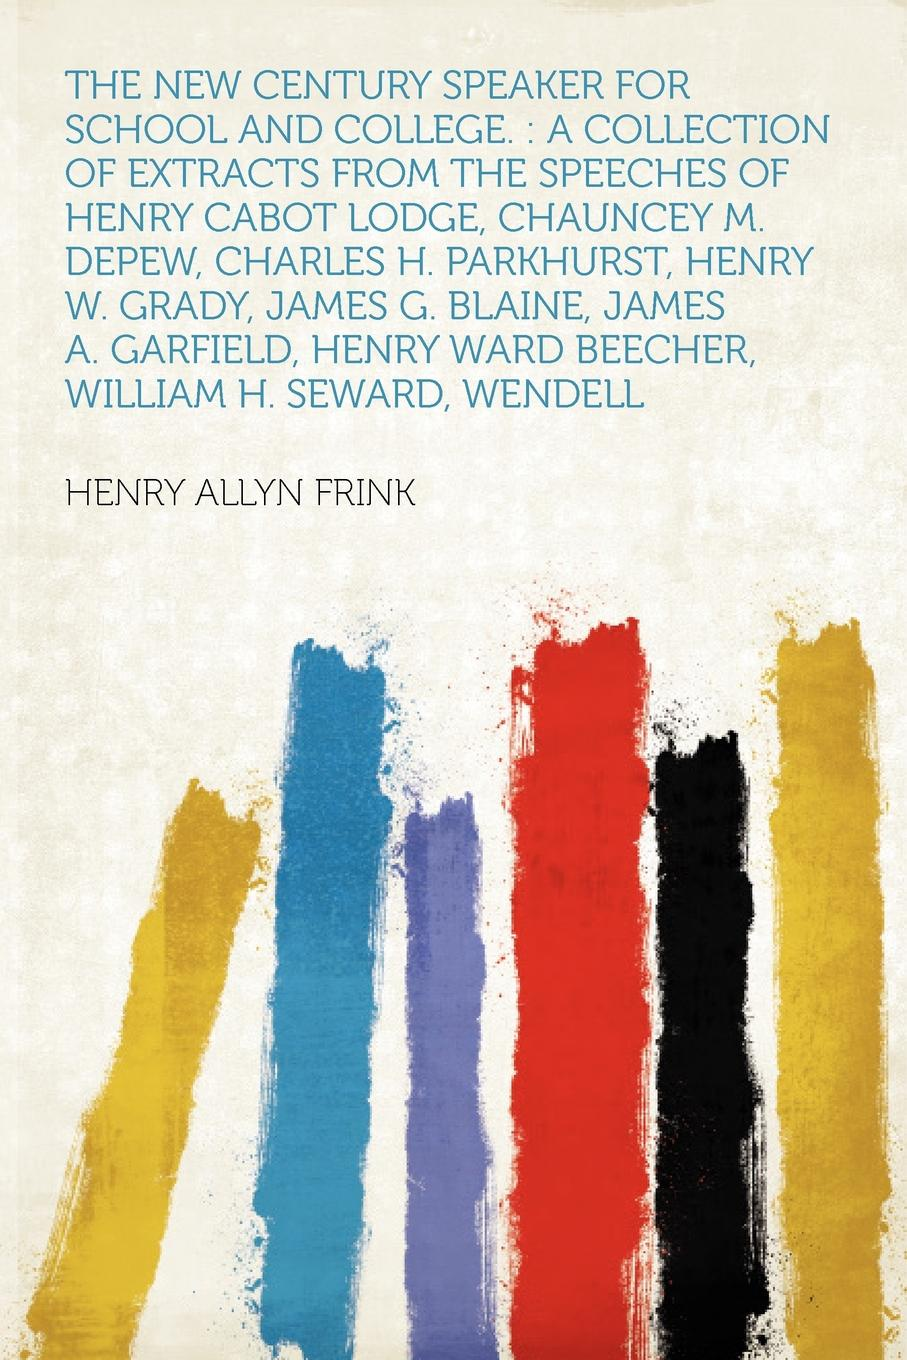 The New Century Speaker for School and College. a Collection of Extracts From the Speeches of Henry Cabot Lodge, Chauncey M. Depew, Charles H. Parkhurst, Henry W. Grady, James G. Blaine, James A. Garfield, Henry Ward Beecher, William H. Seward, We... zacharias greg w a companion to henry james